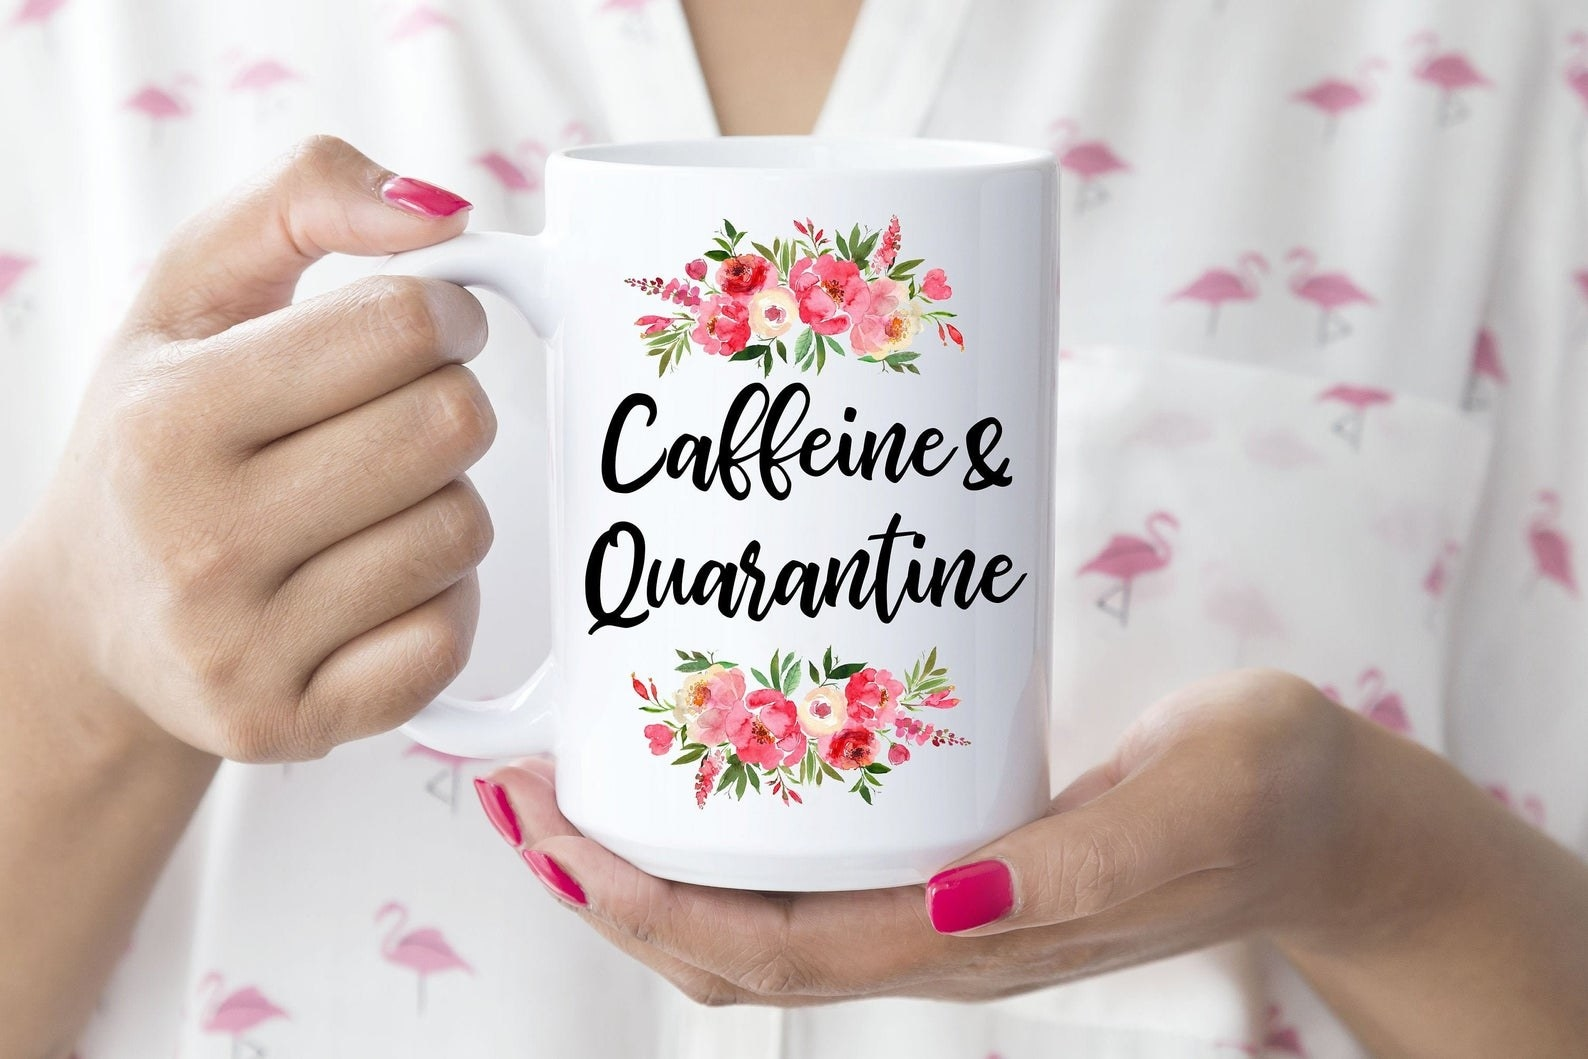 """A mug with floral accents that says """"Caffeine & Quarantine"""""""